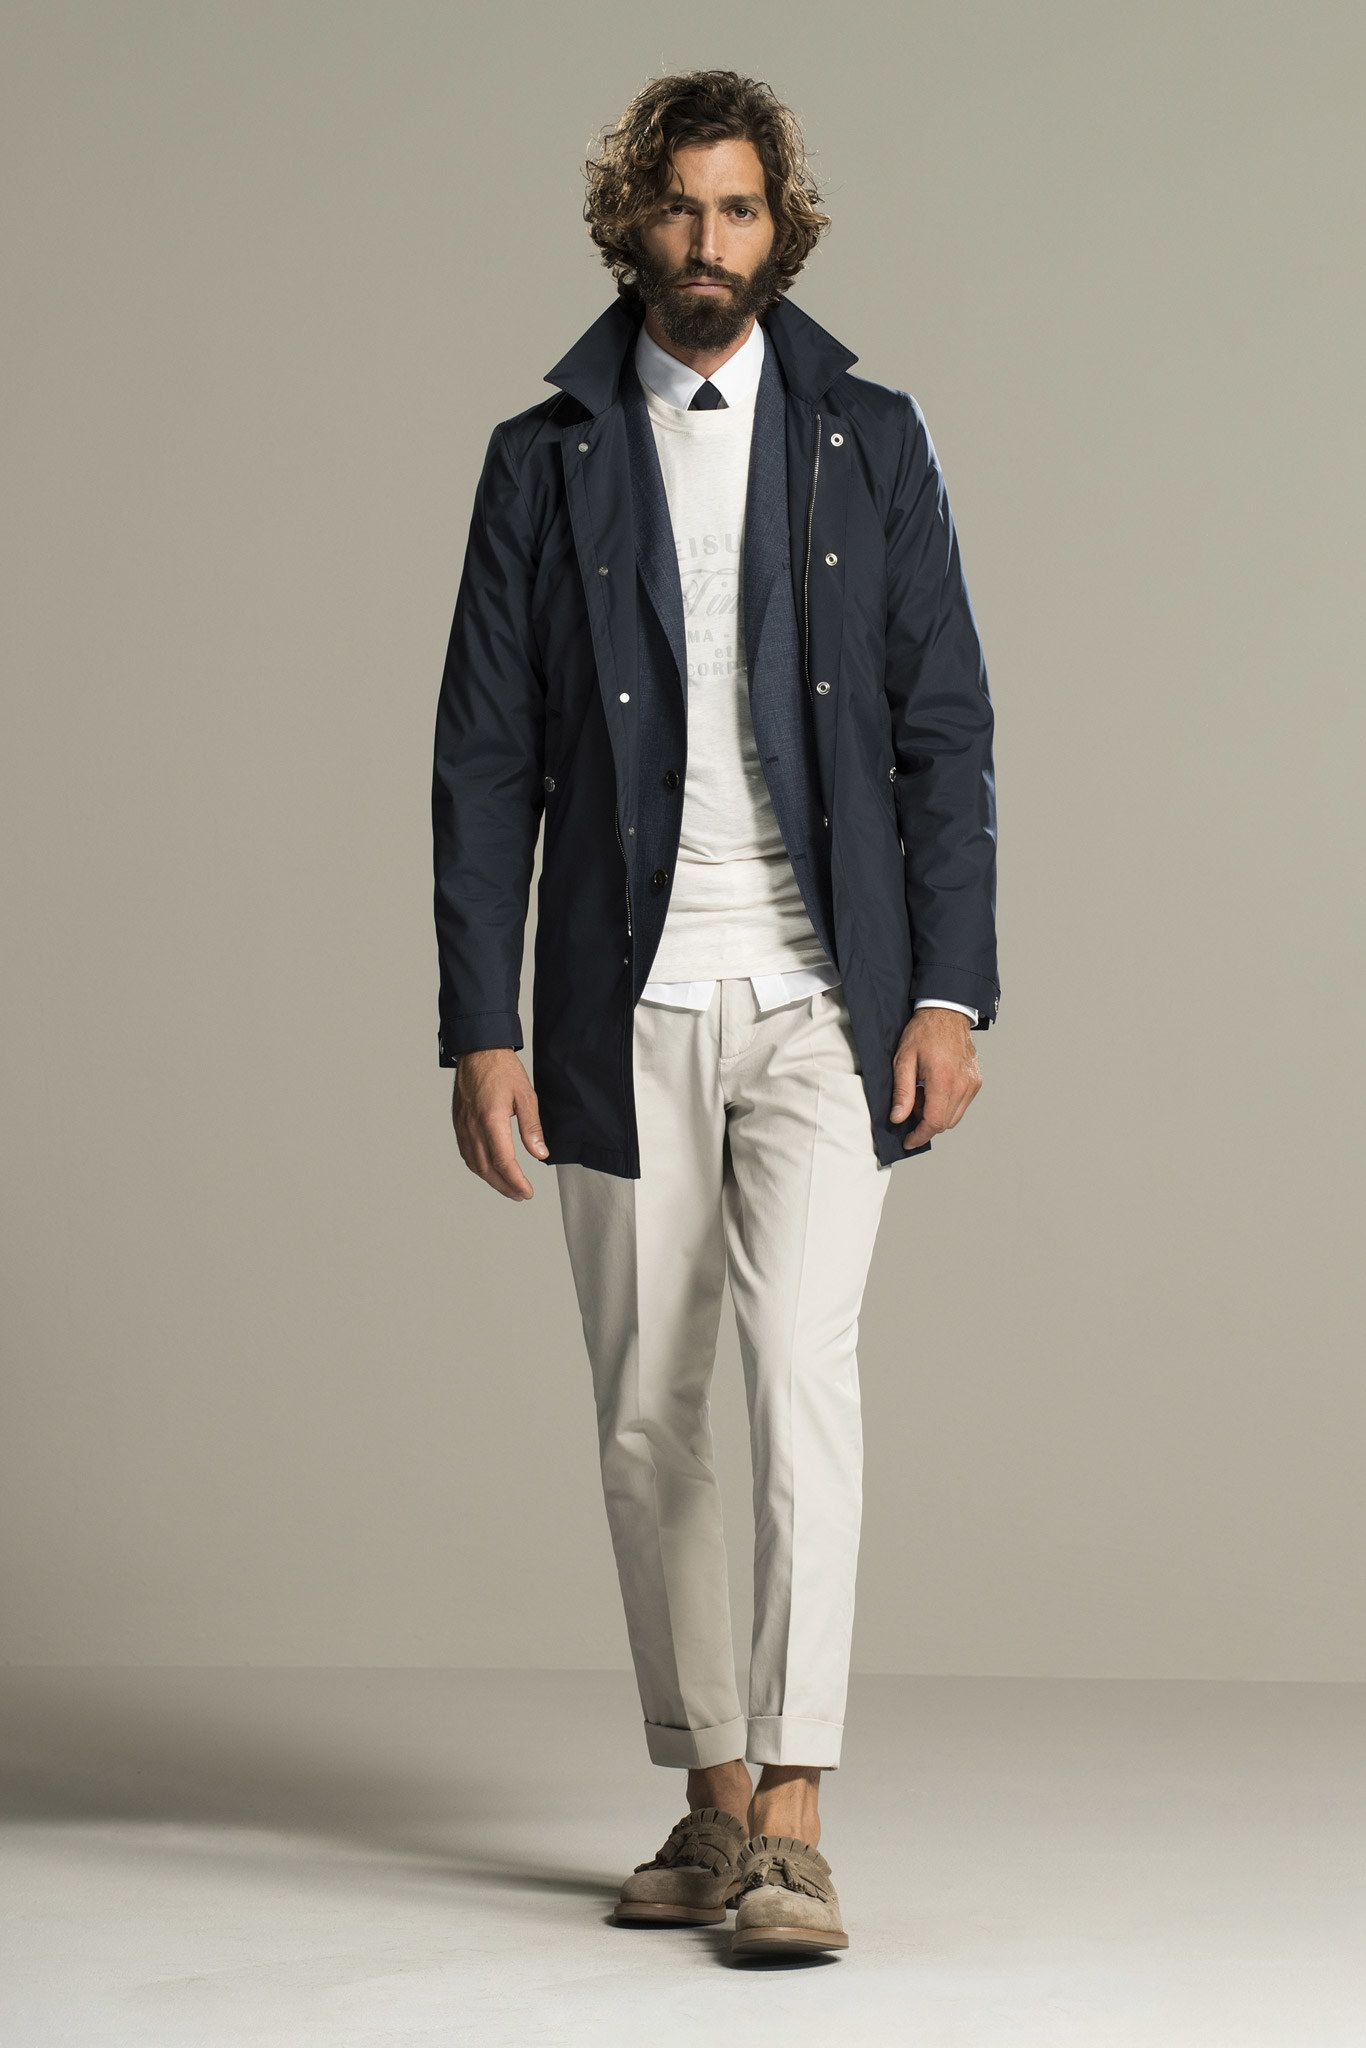 Brunello Cucinelli Spring 2016 Menswear Fashion Show